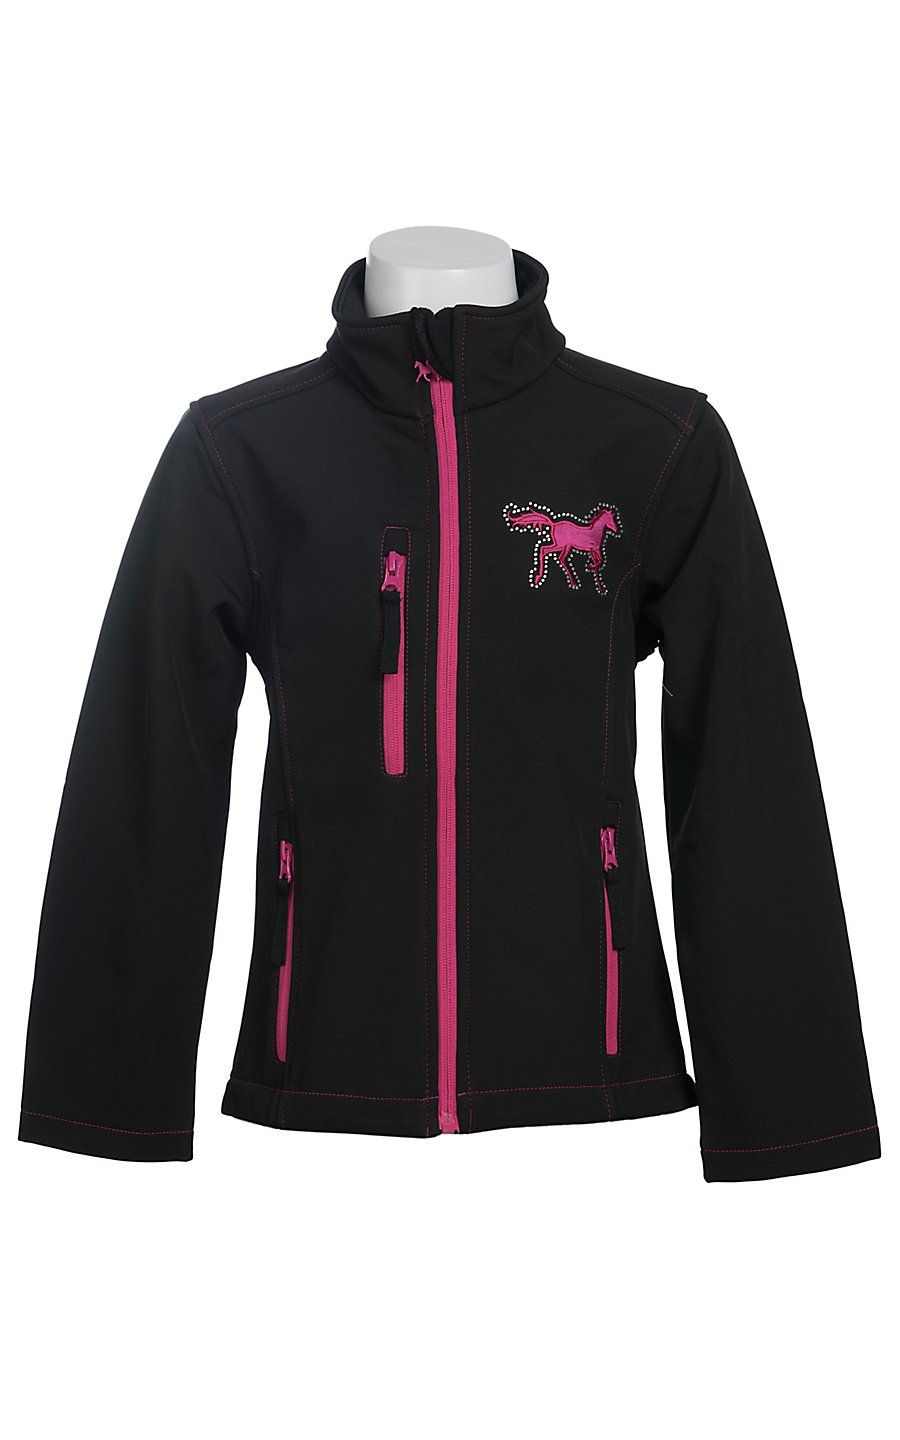 Cowgirl Hardware Girl S Black With Pink Zebra Heart And Horse Polyshell Jacket Outerwear Jackets Childrens Outerwear Jackets [ 1440 x 900 Pixel ]